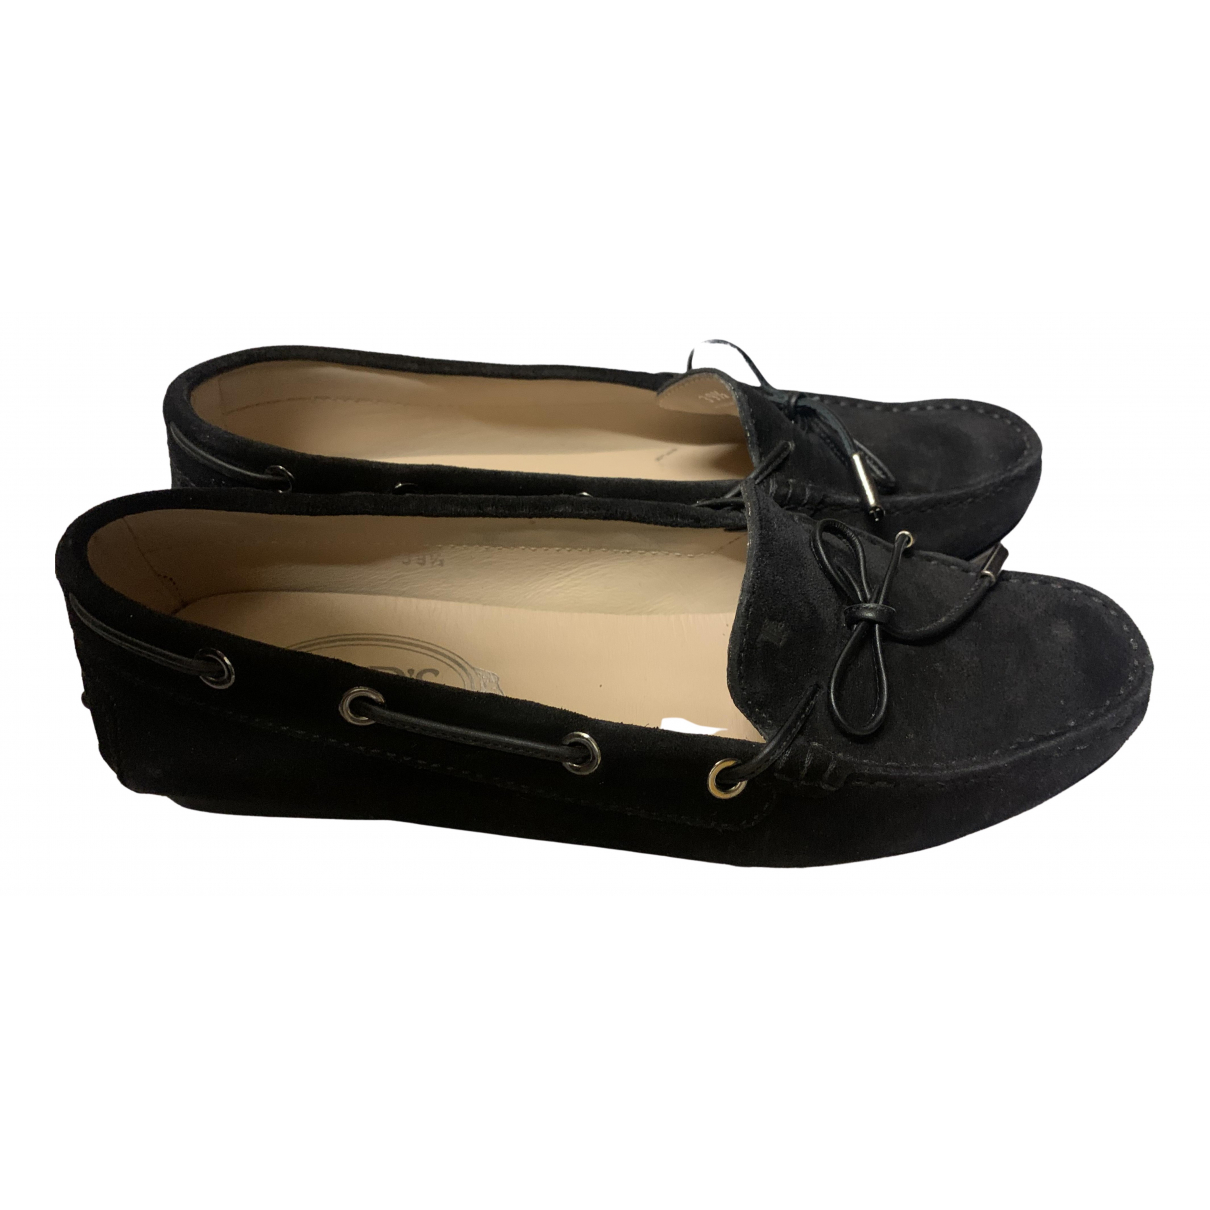 Tod's N Black Leather Flats for Women 39.5 EU